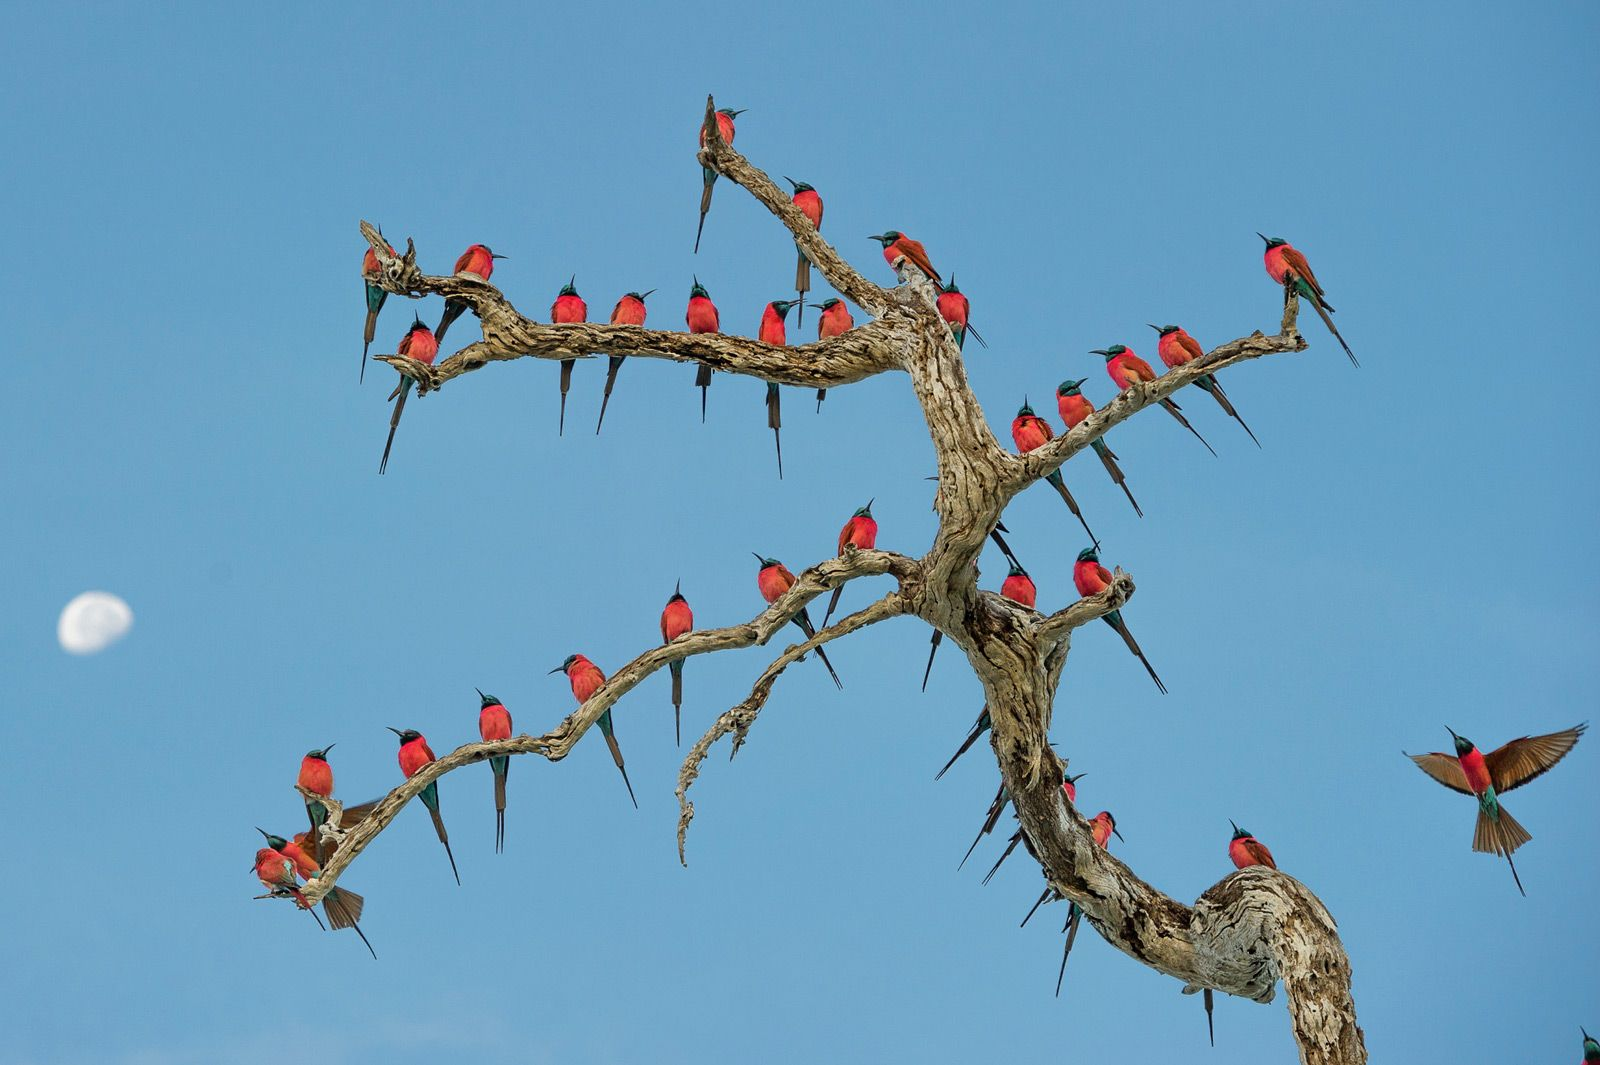 The northern carmine bee-eater is a seasonal visitor to the Selous, often found roosting in great numbers on trees and bushes in and around lakes and rivers.